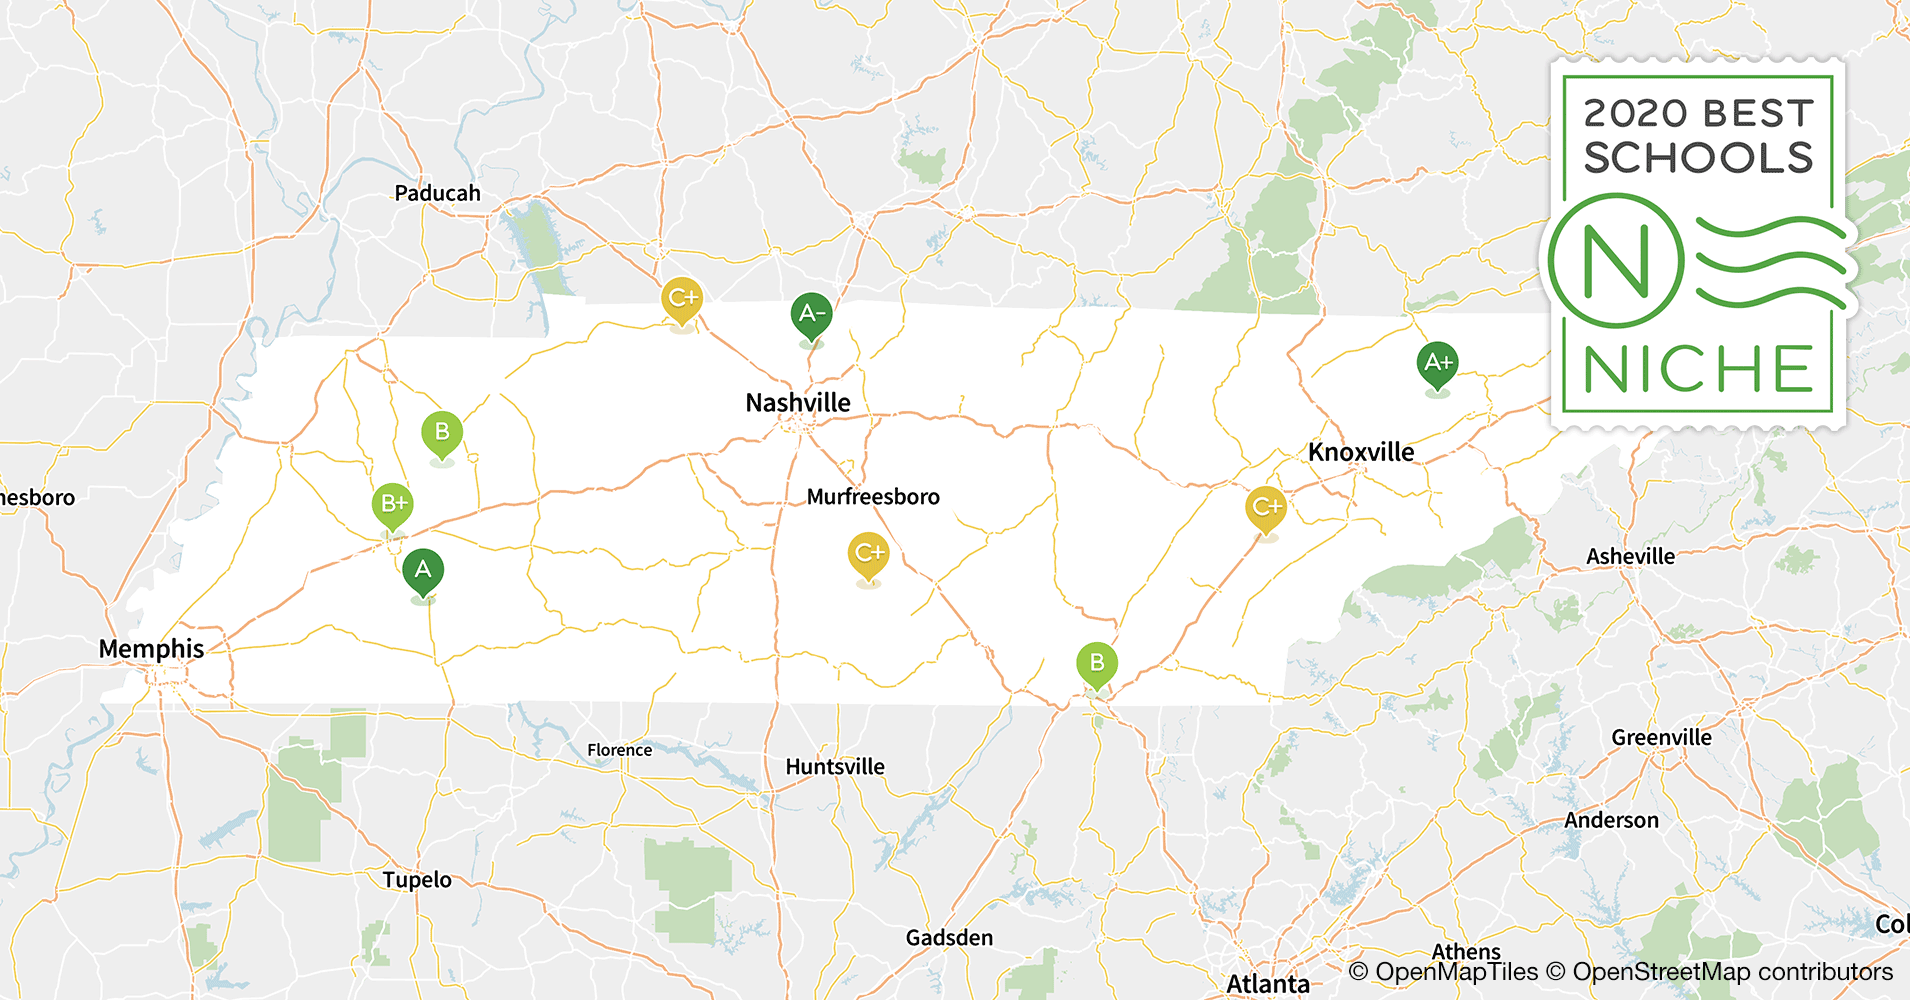 2020 Best Public Middle Schools in Tennessee - Niche